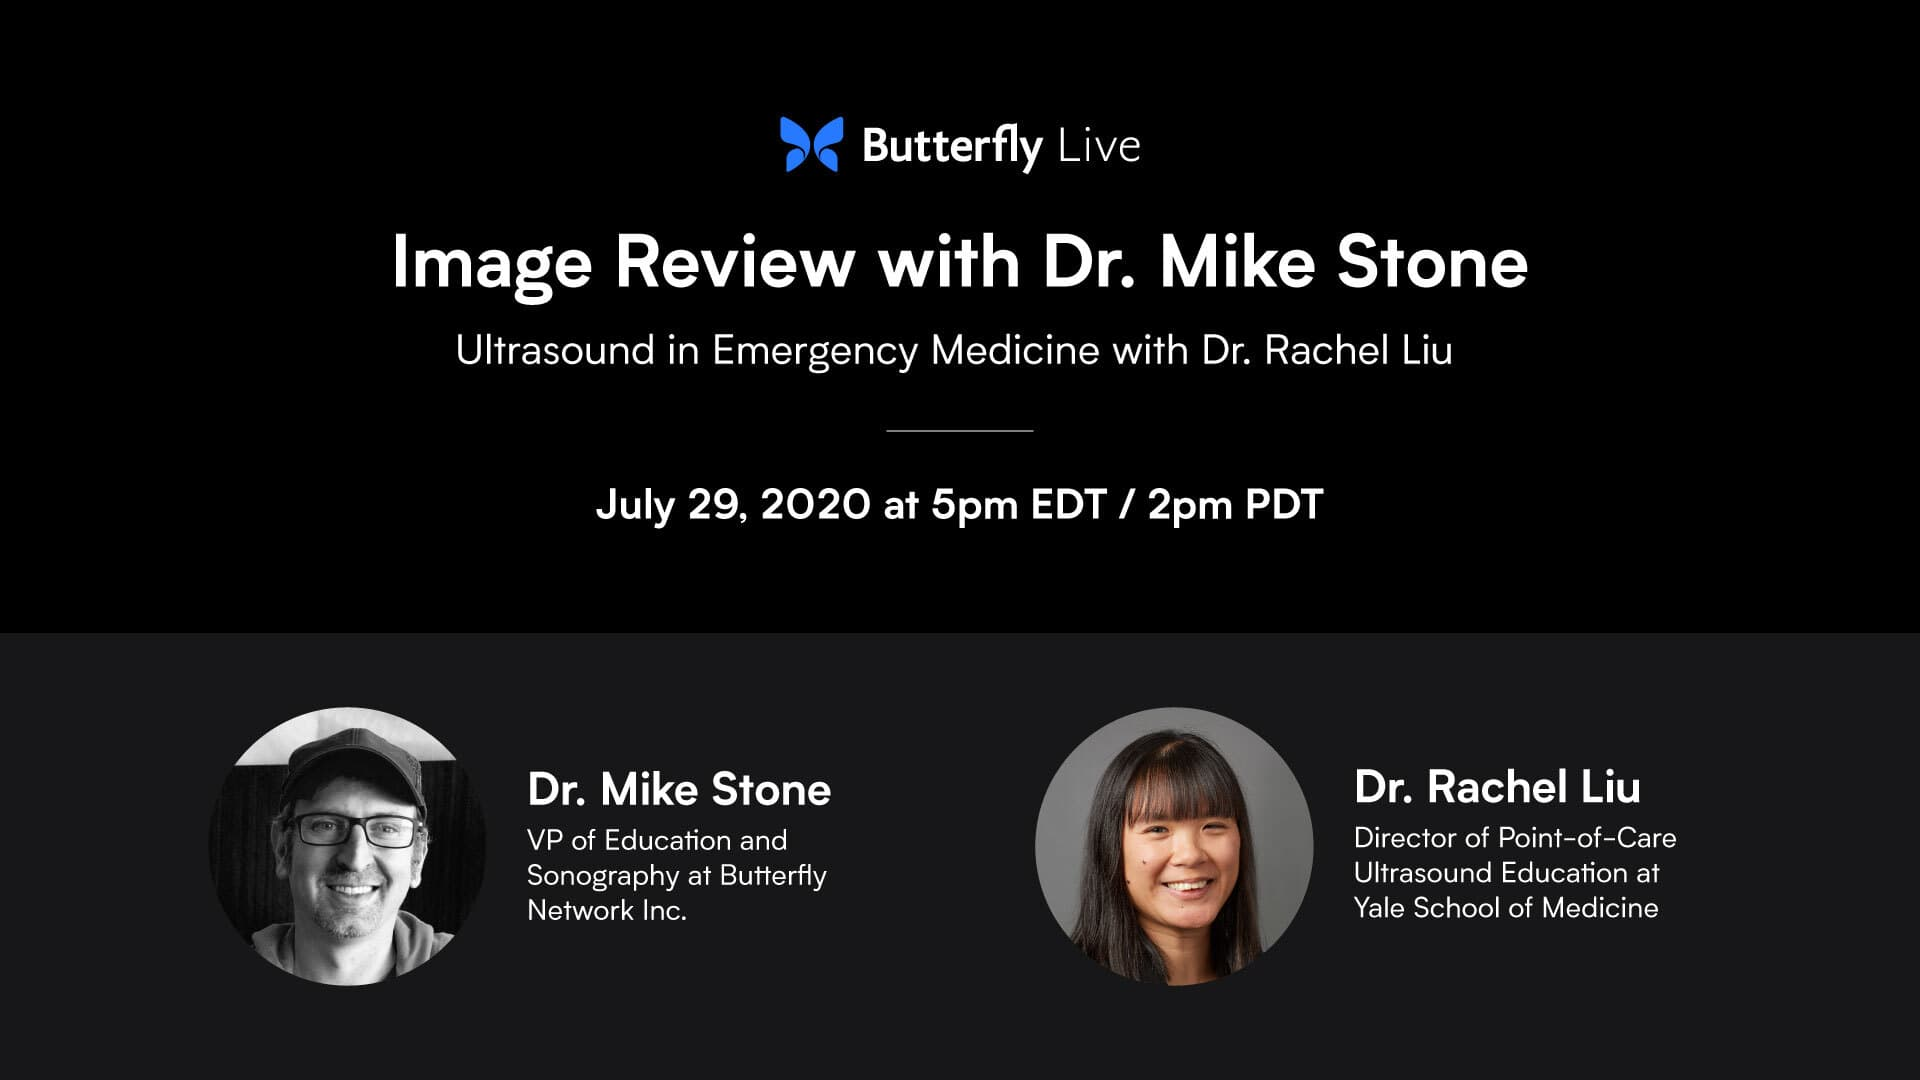 Ultrasound Image Review with Dr. Rachel Liu